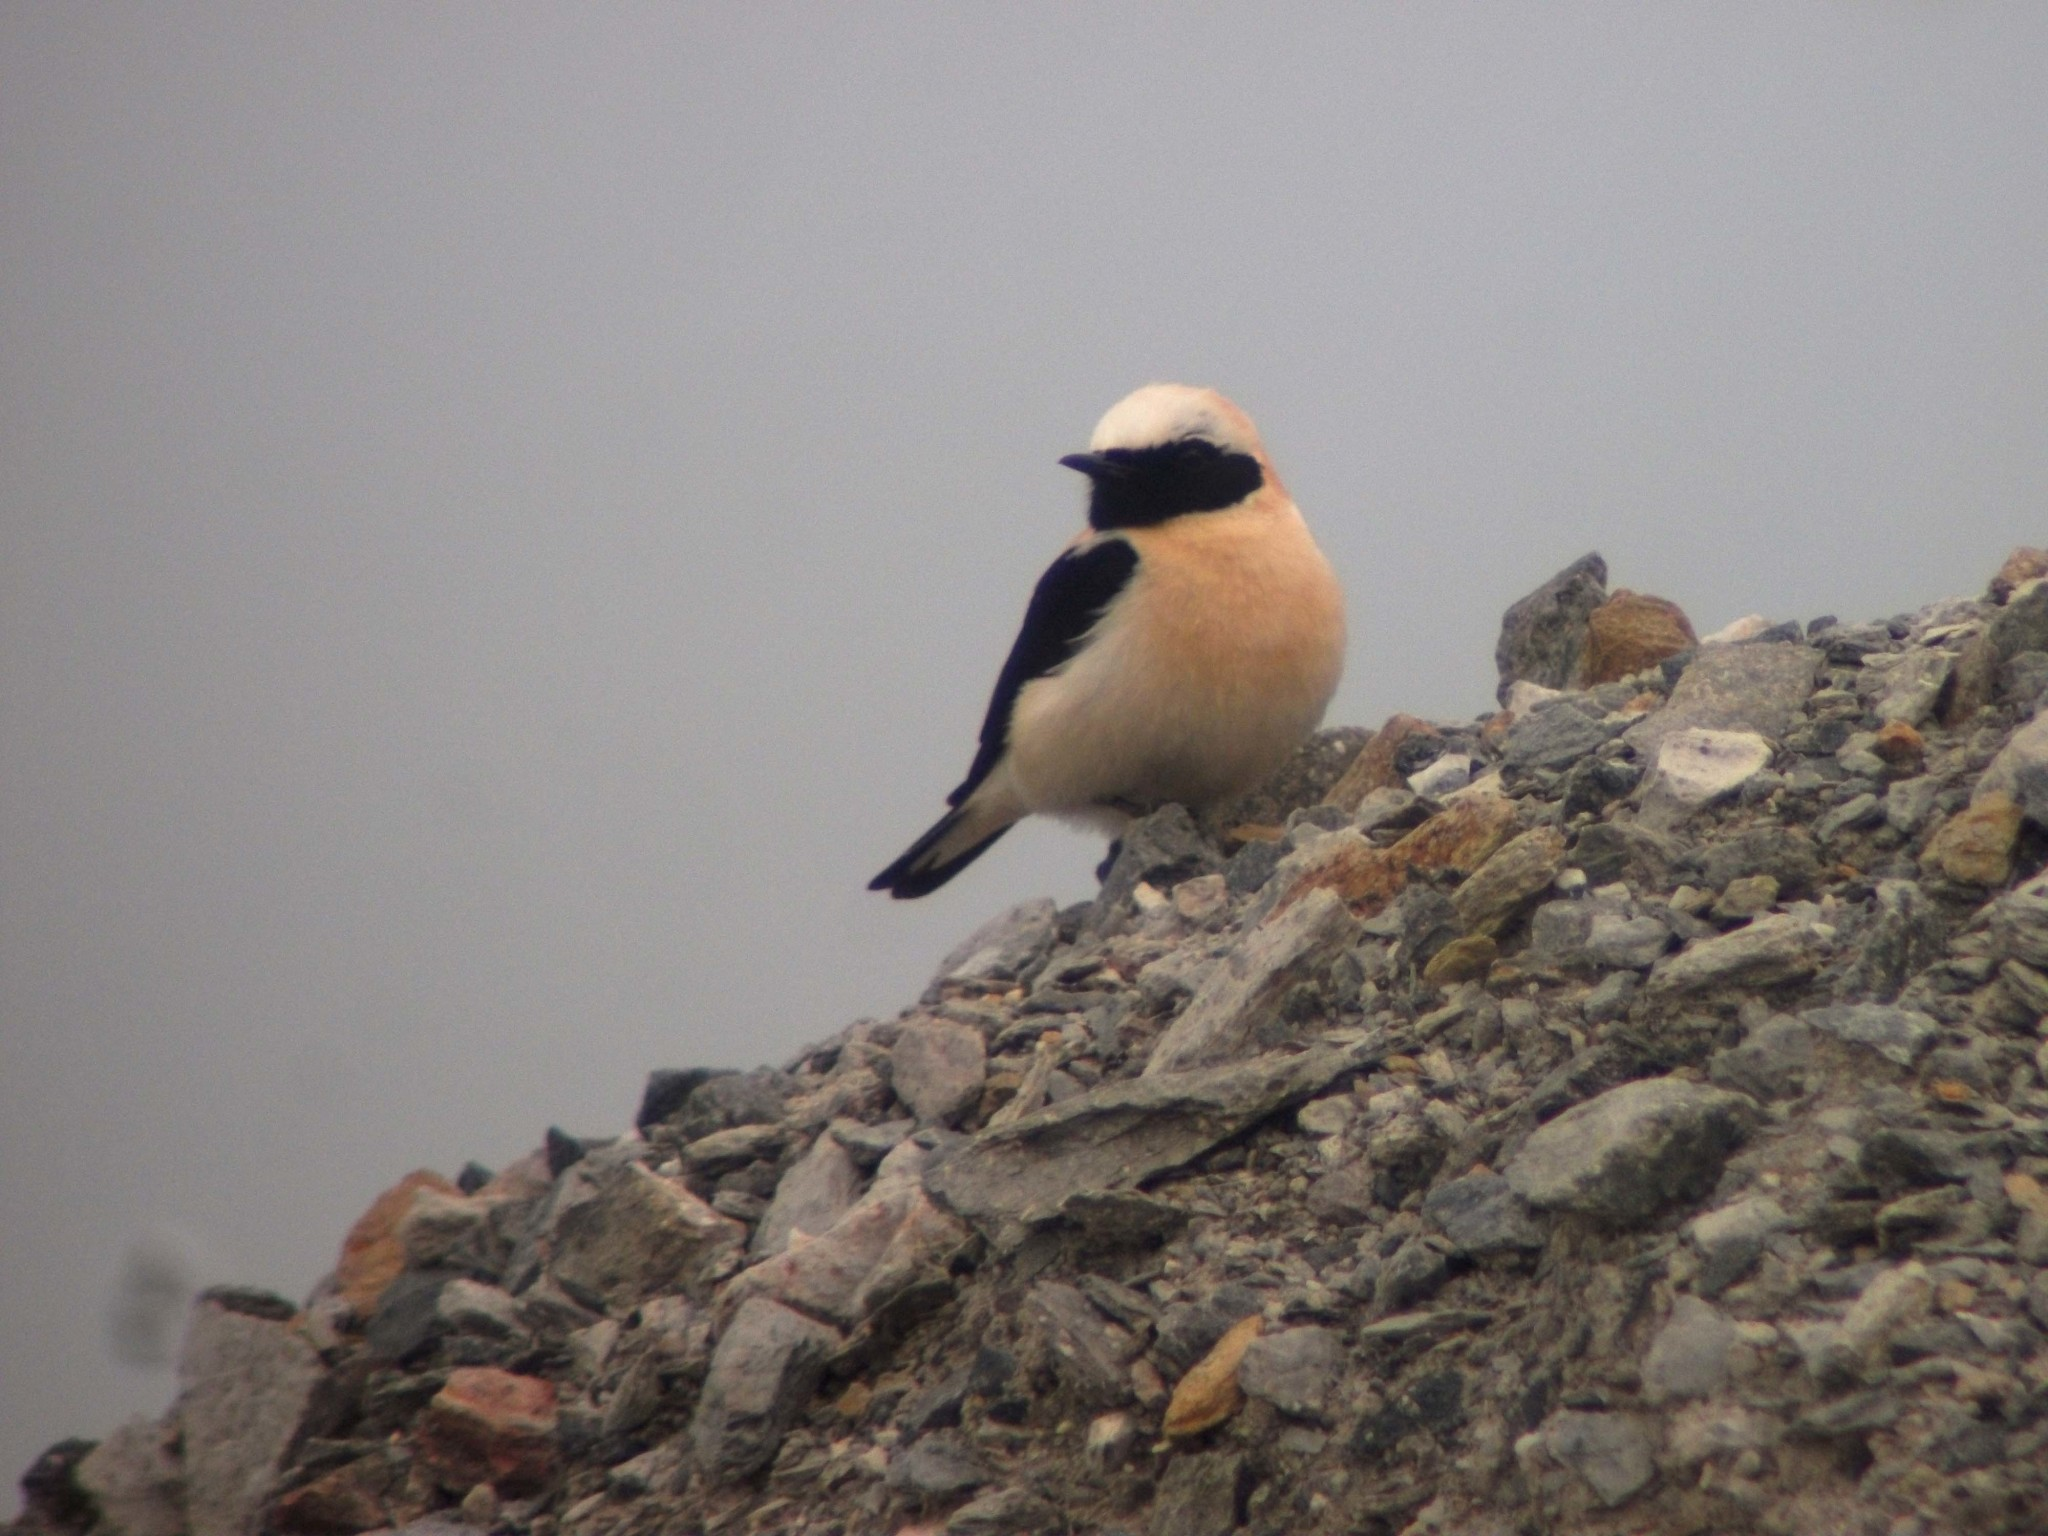 Black-eared Wheatear perched on a pile of rocks